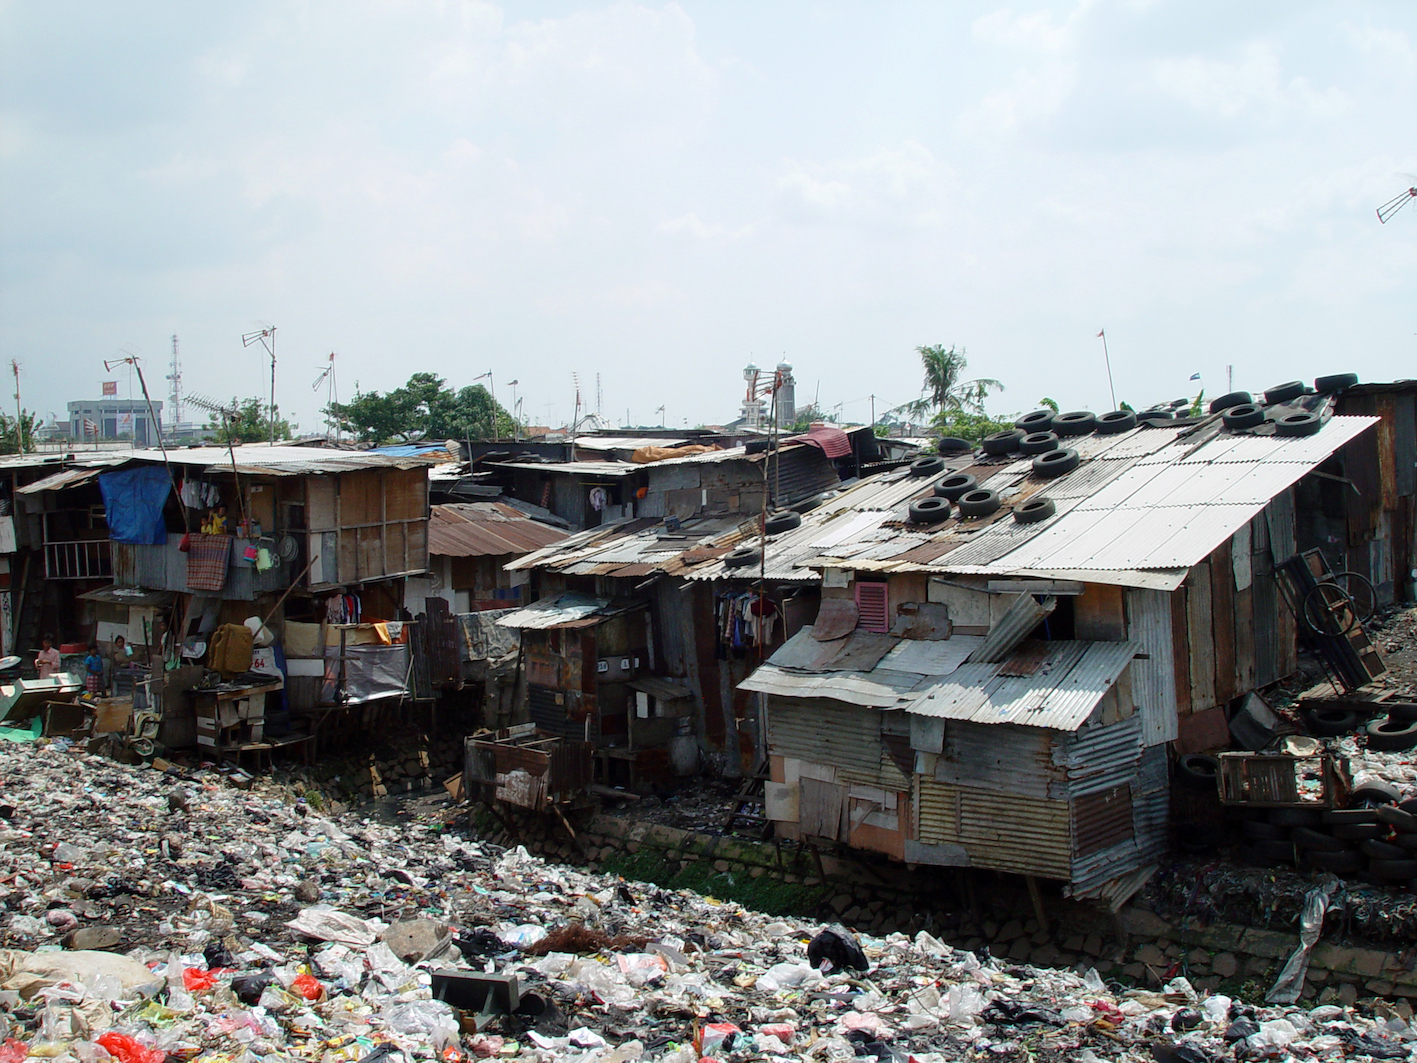 issue of shanty towns around the world